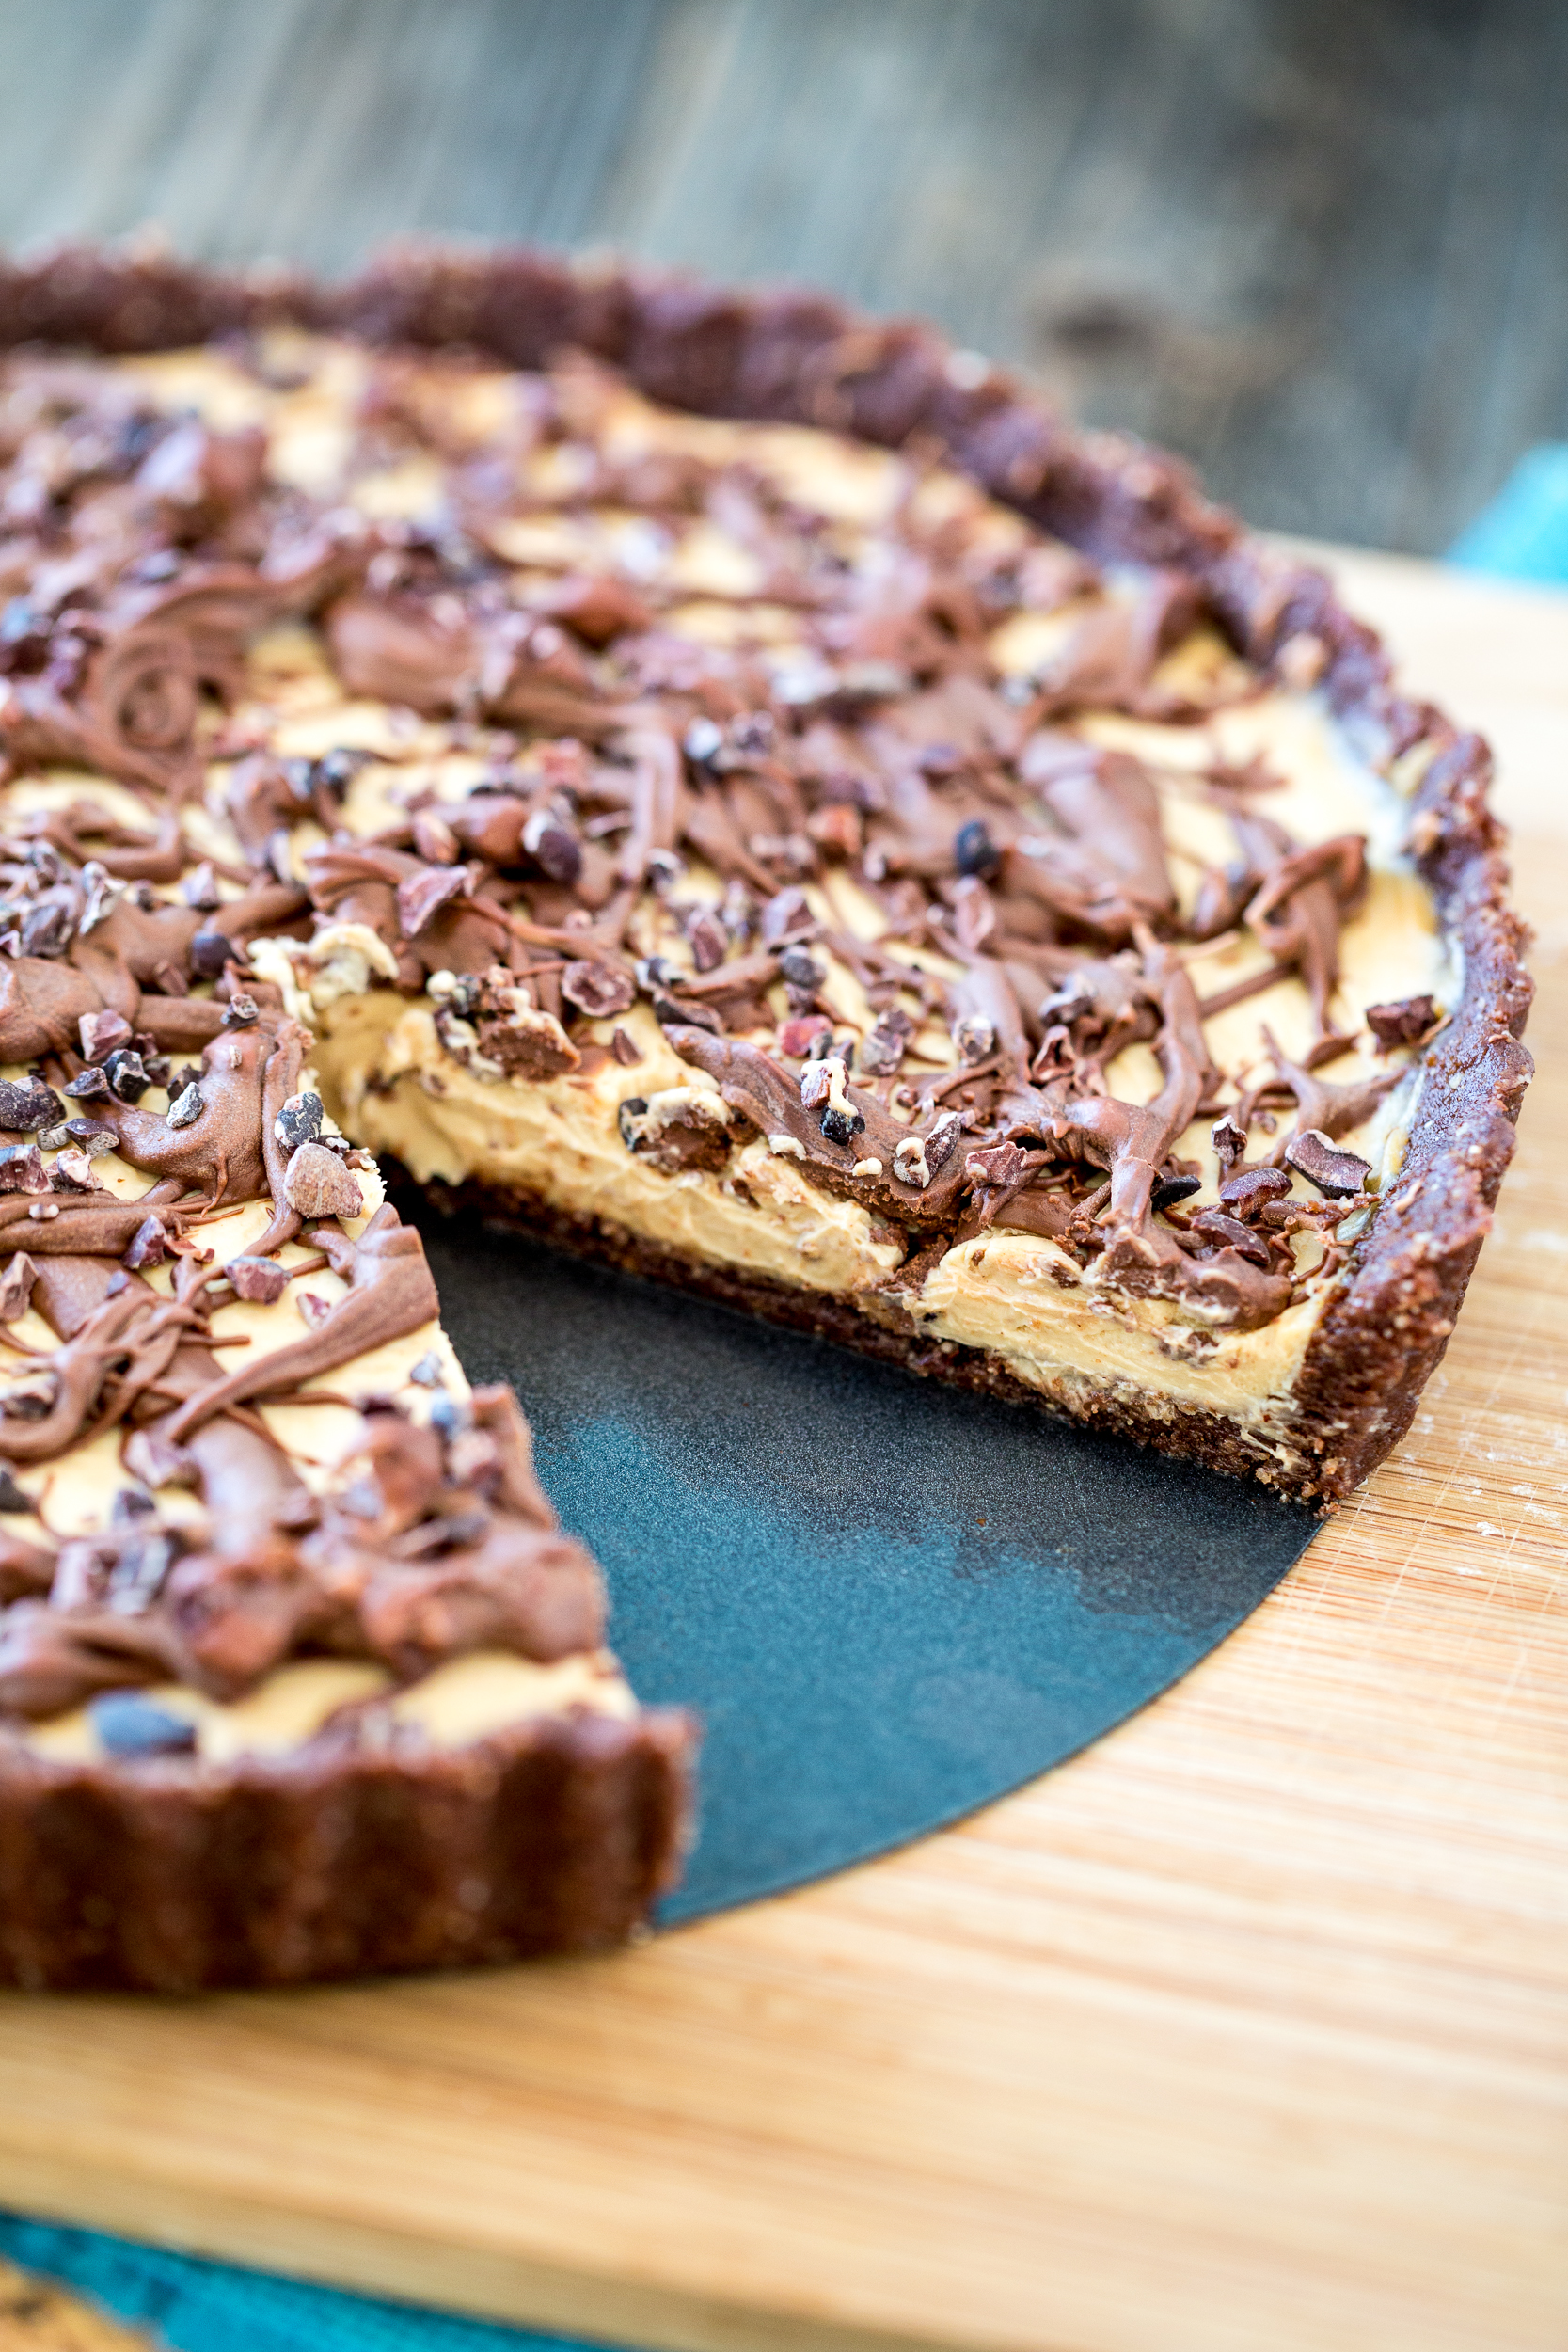 No-Bake Chocolate Peanut Butter Tart & Big News!